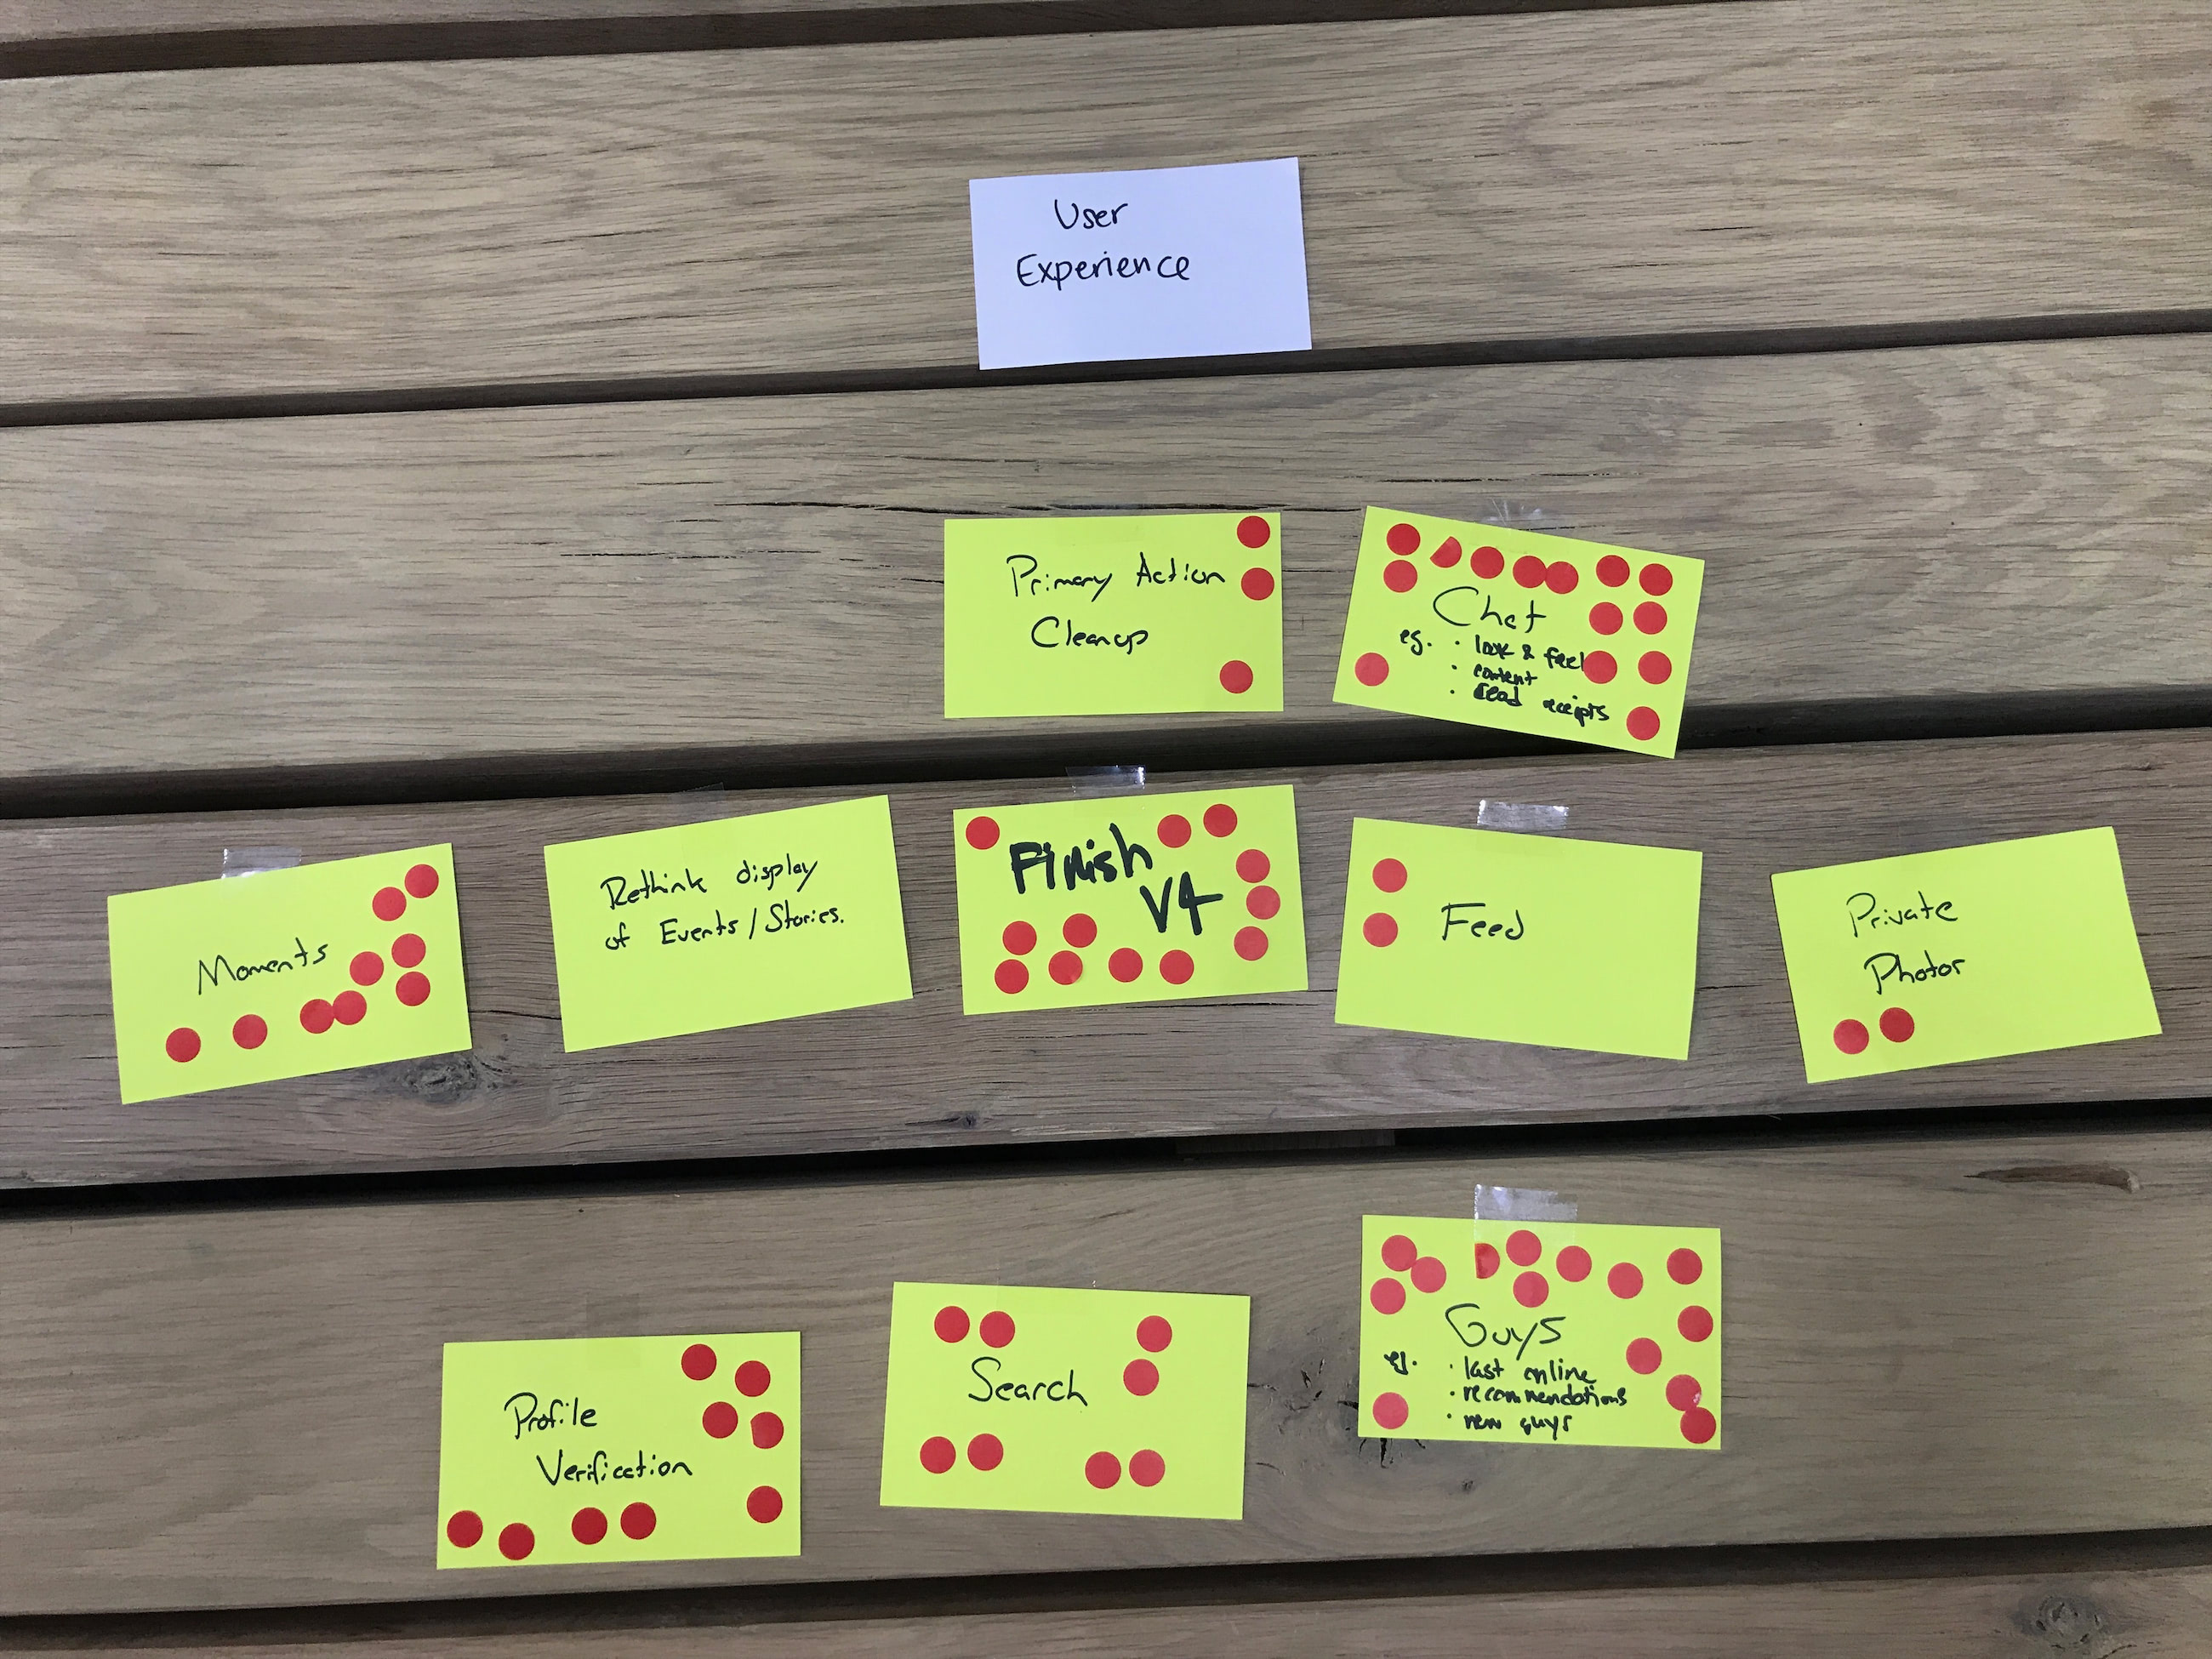 Agile inception dot voting results.